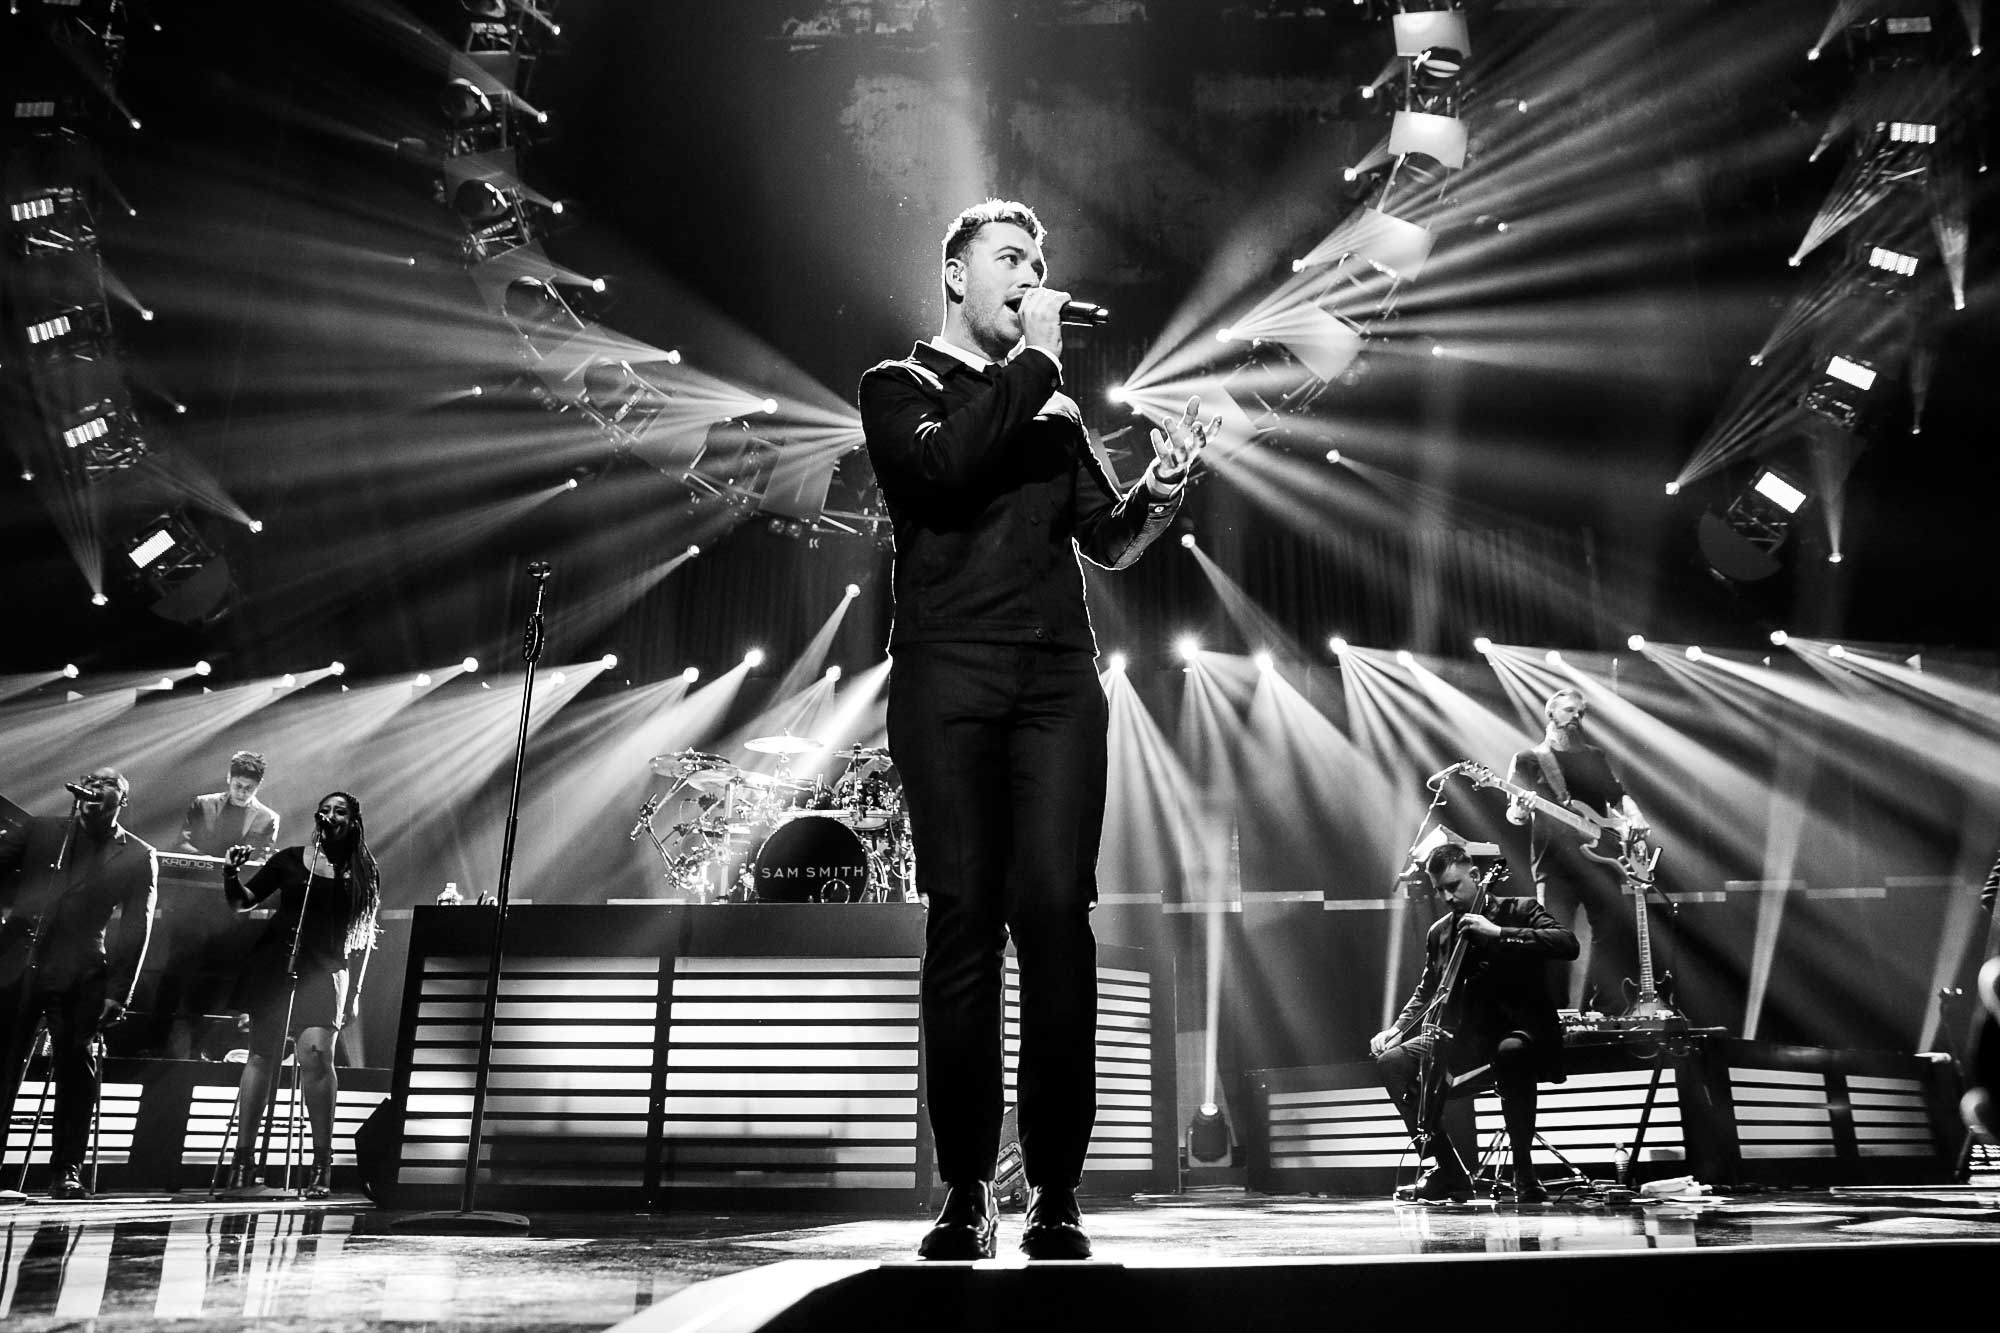 Sam Smith onstage at the iHeartRadio Music Festival